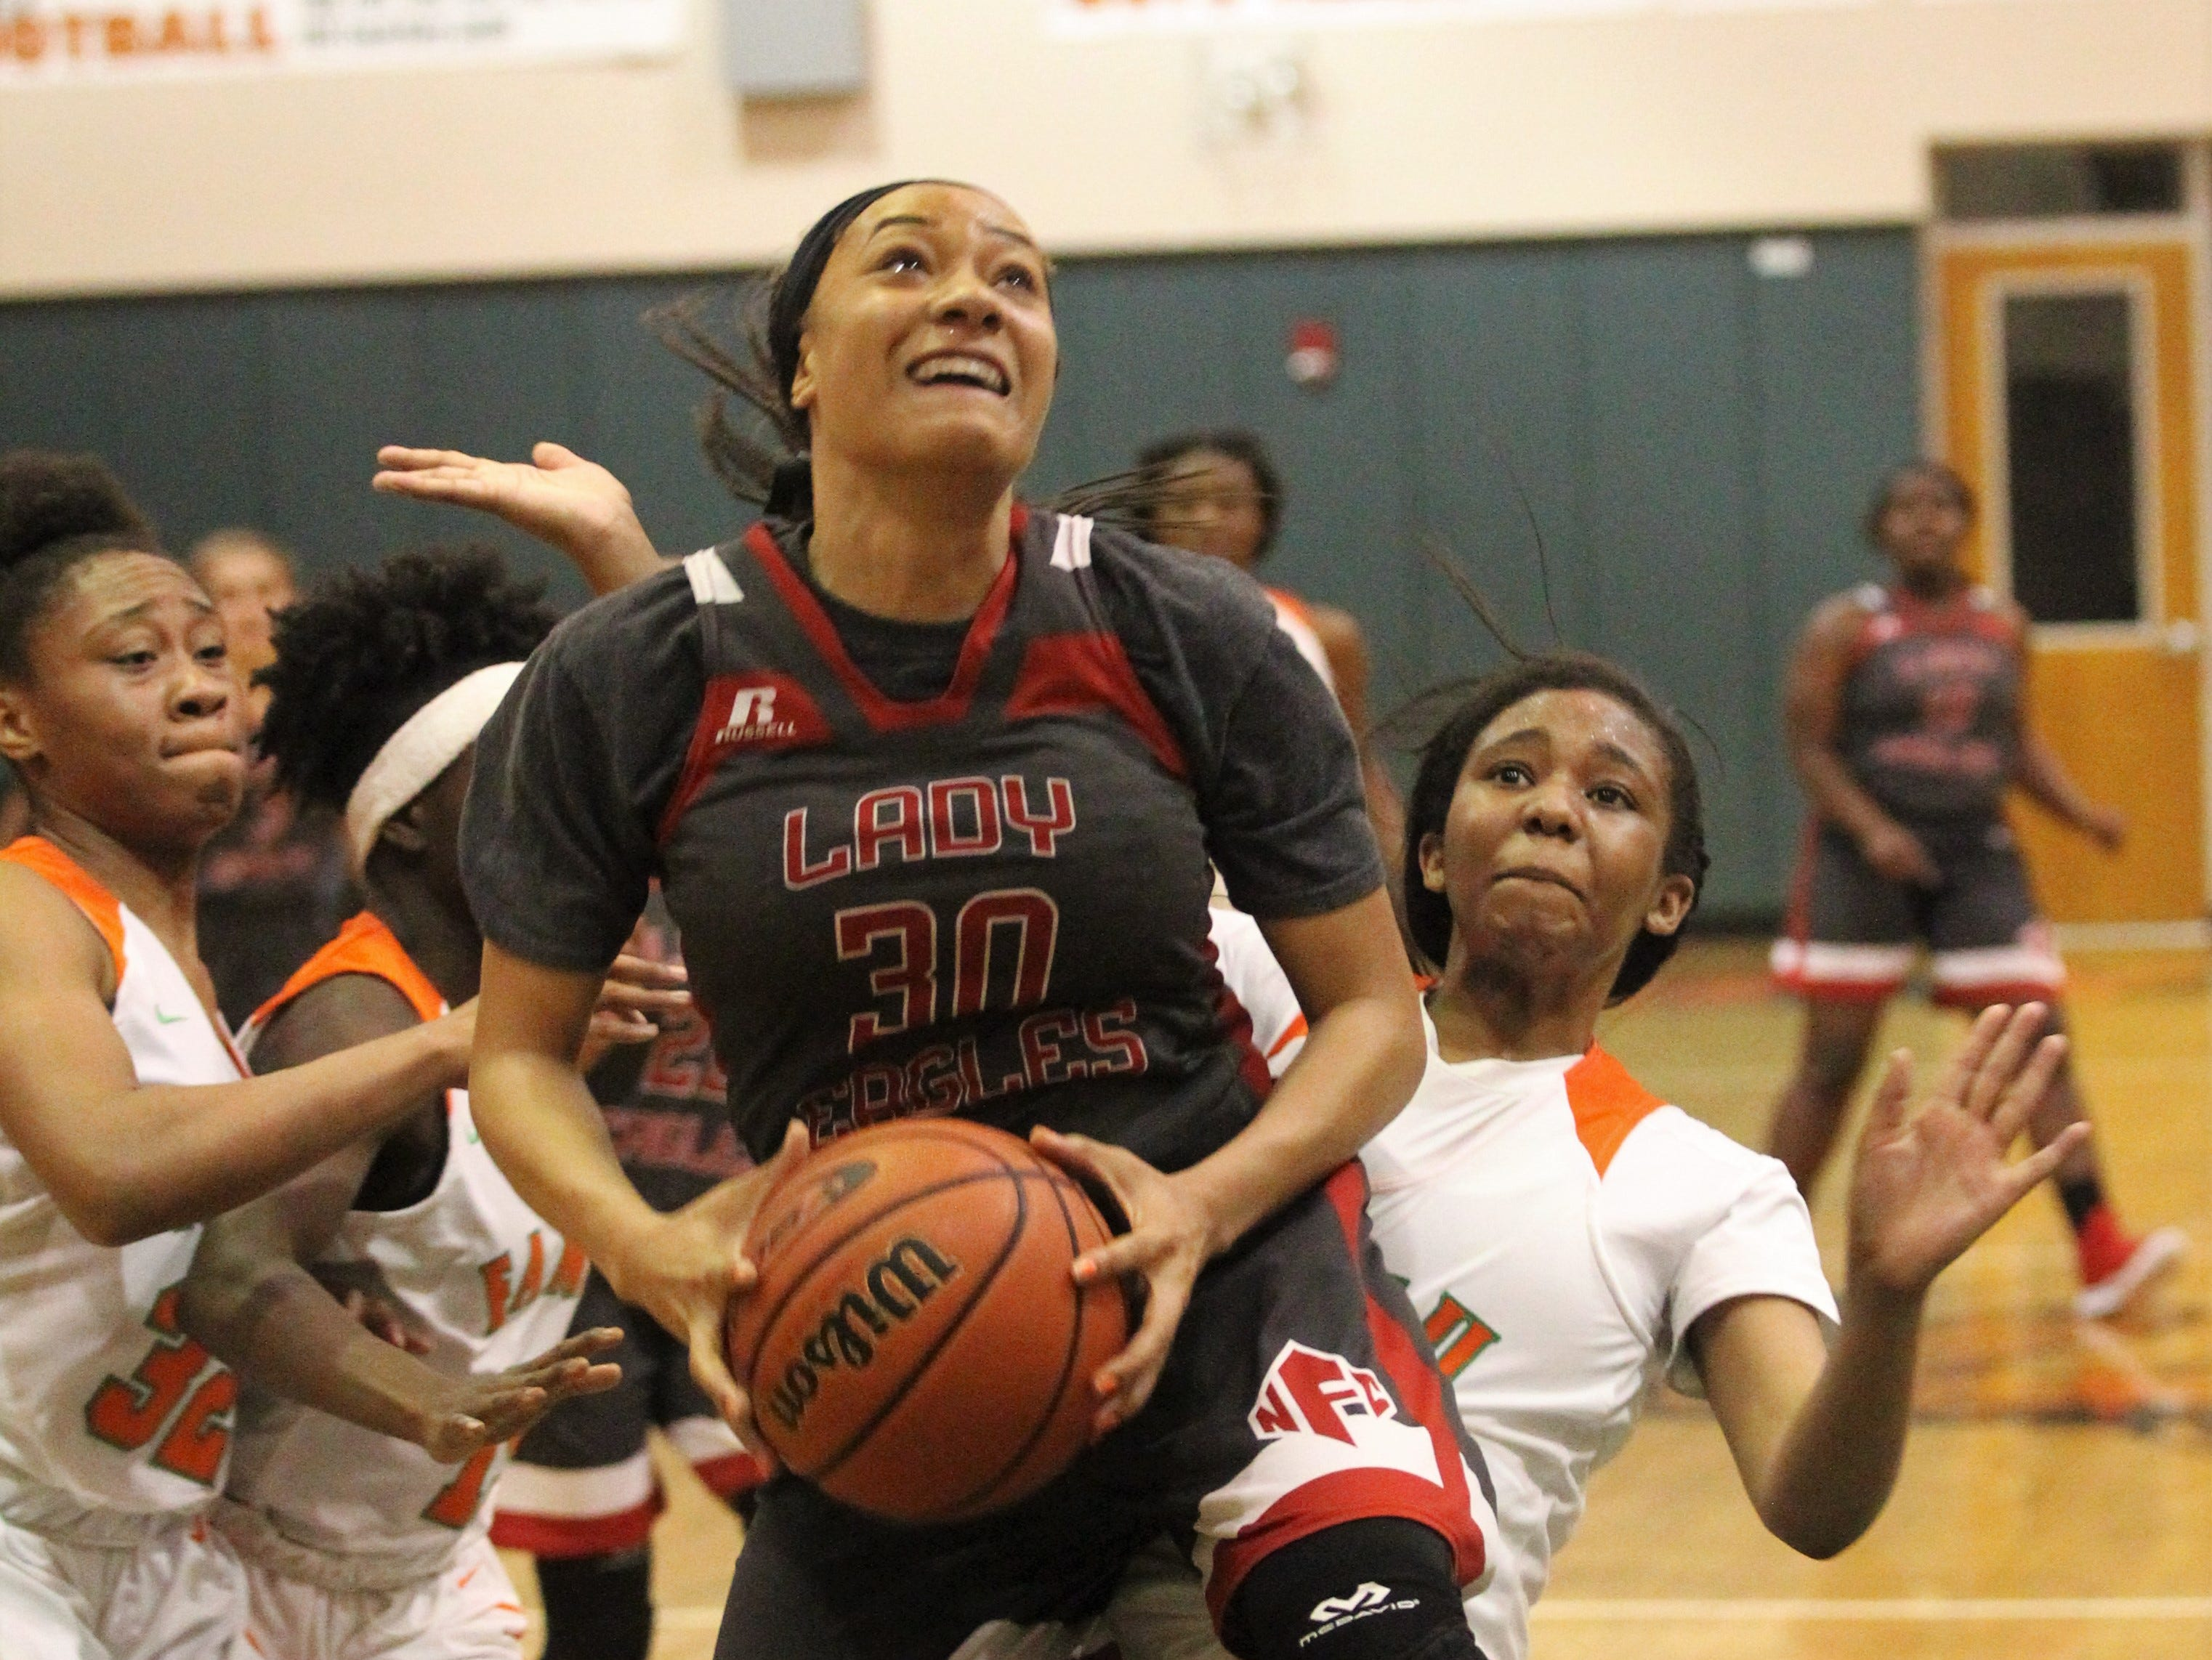 NFC senior Caylan Jones hangs in the air while attempting a layup as FAMU DRS' girls basketball team beat NFC 59-41 for a District 1-3A title on Jan. 7, 2019.